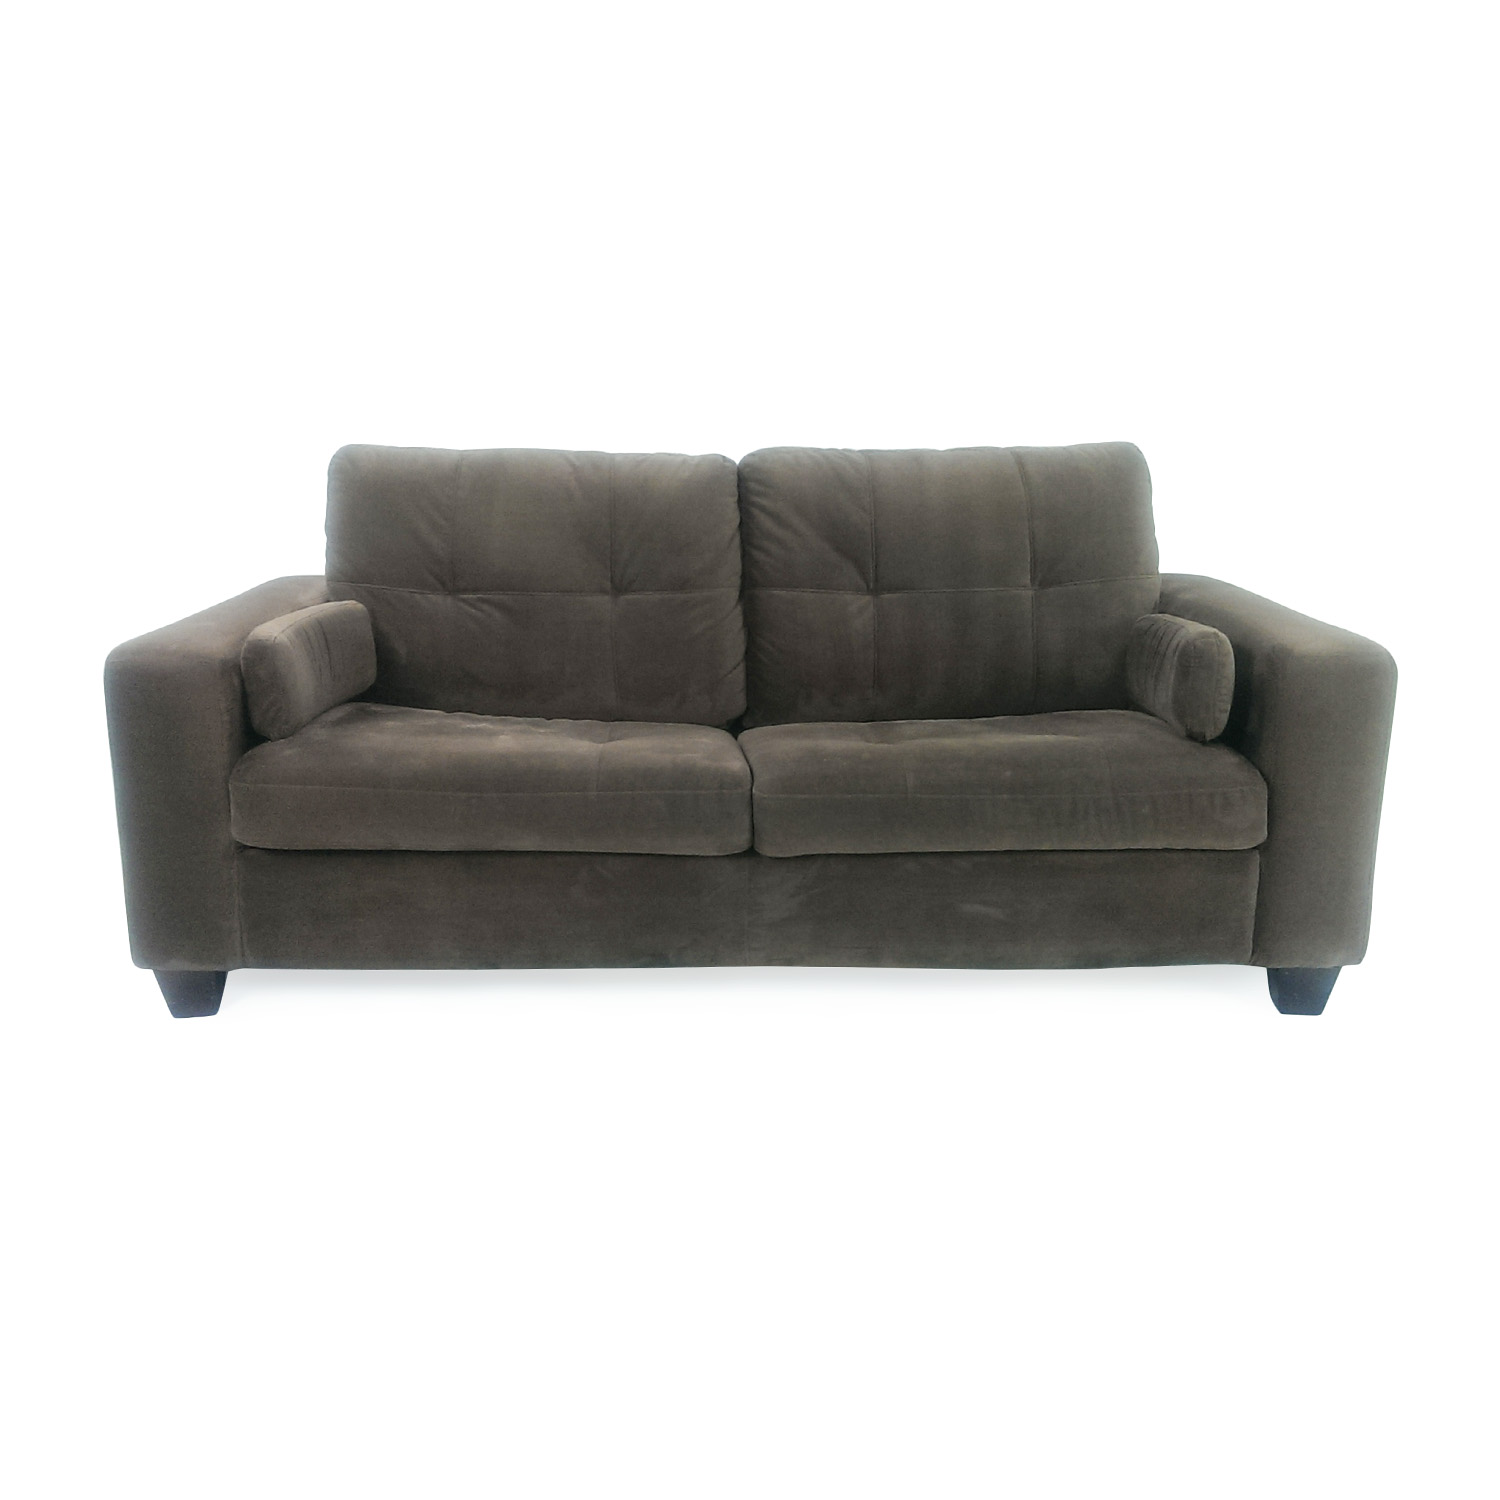 Jennifer Convertibles Jennifer Convertibles Microsuede Pull Out Sofa discount